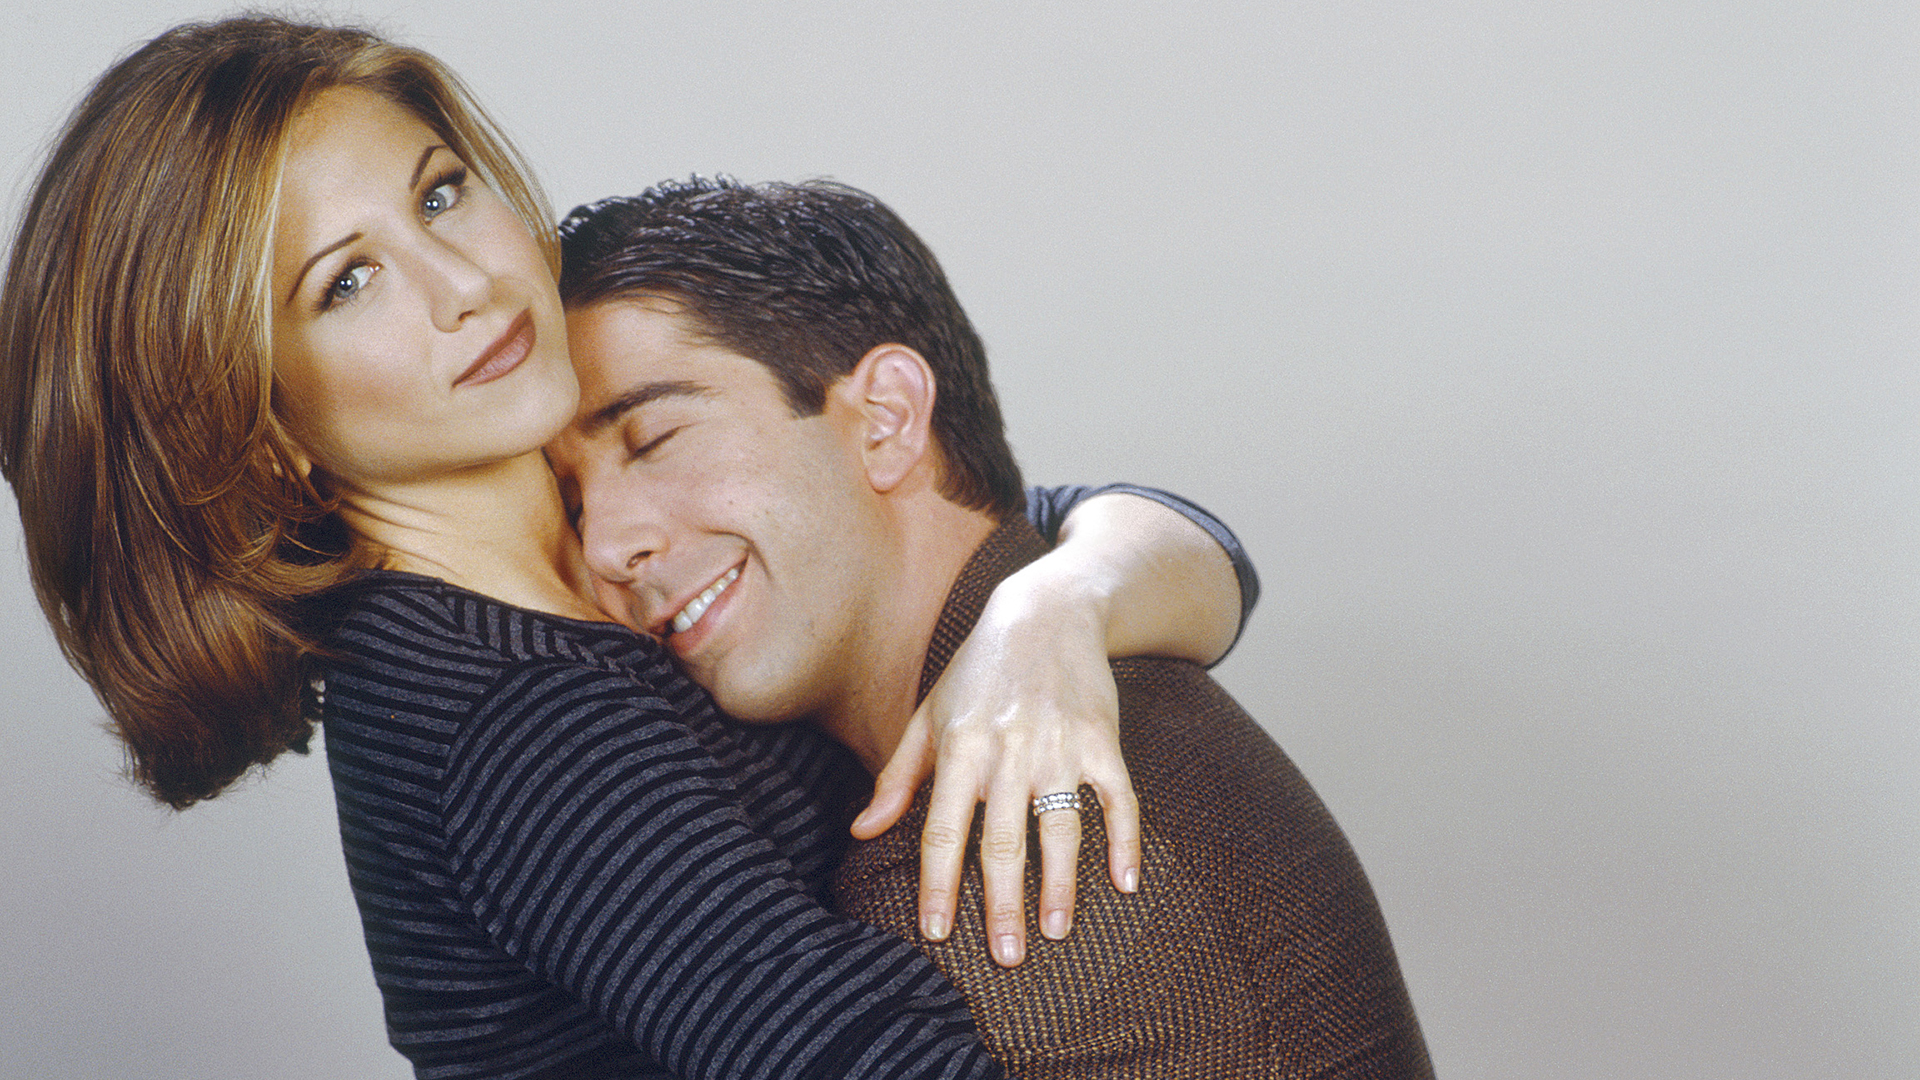 ross and rachel dating history